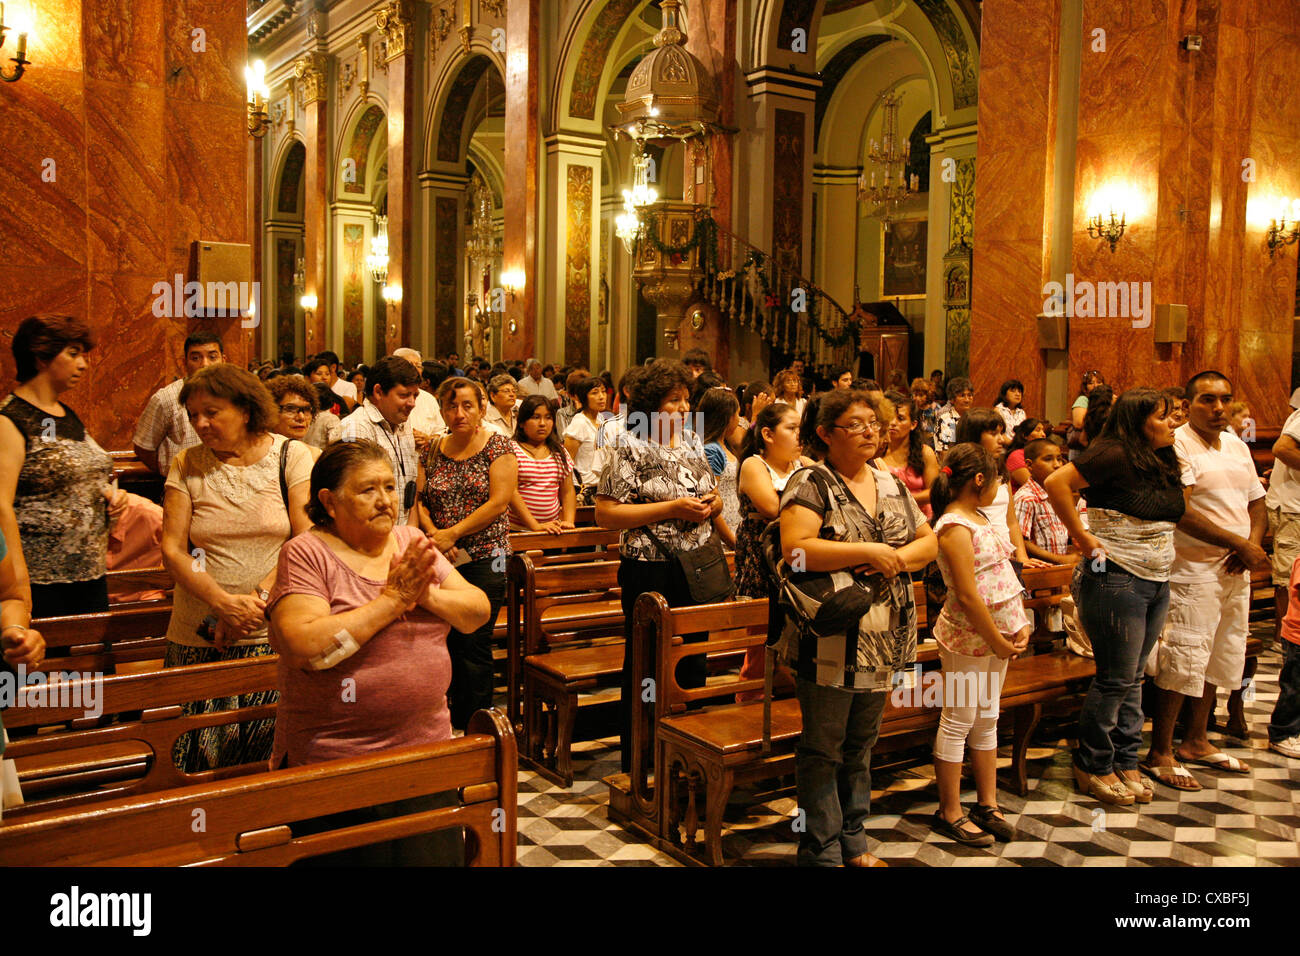 Mass at Iglesia Catedral, the main cathedral on 9 julio square,Salta city, Argentina. - Stock Image